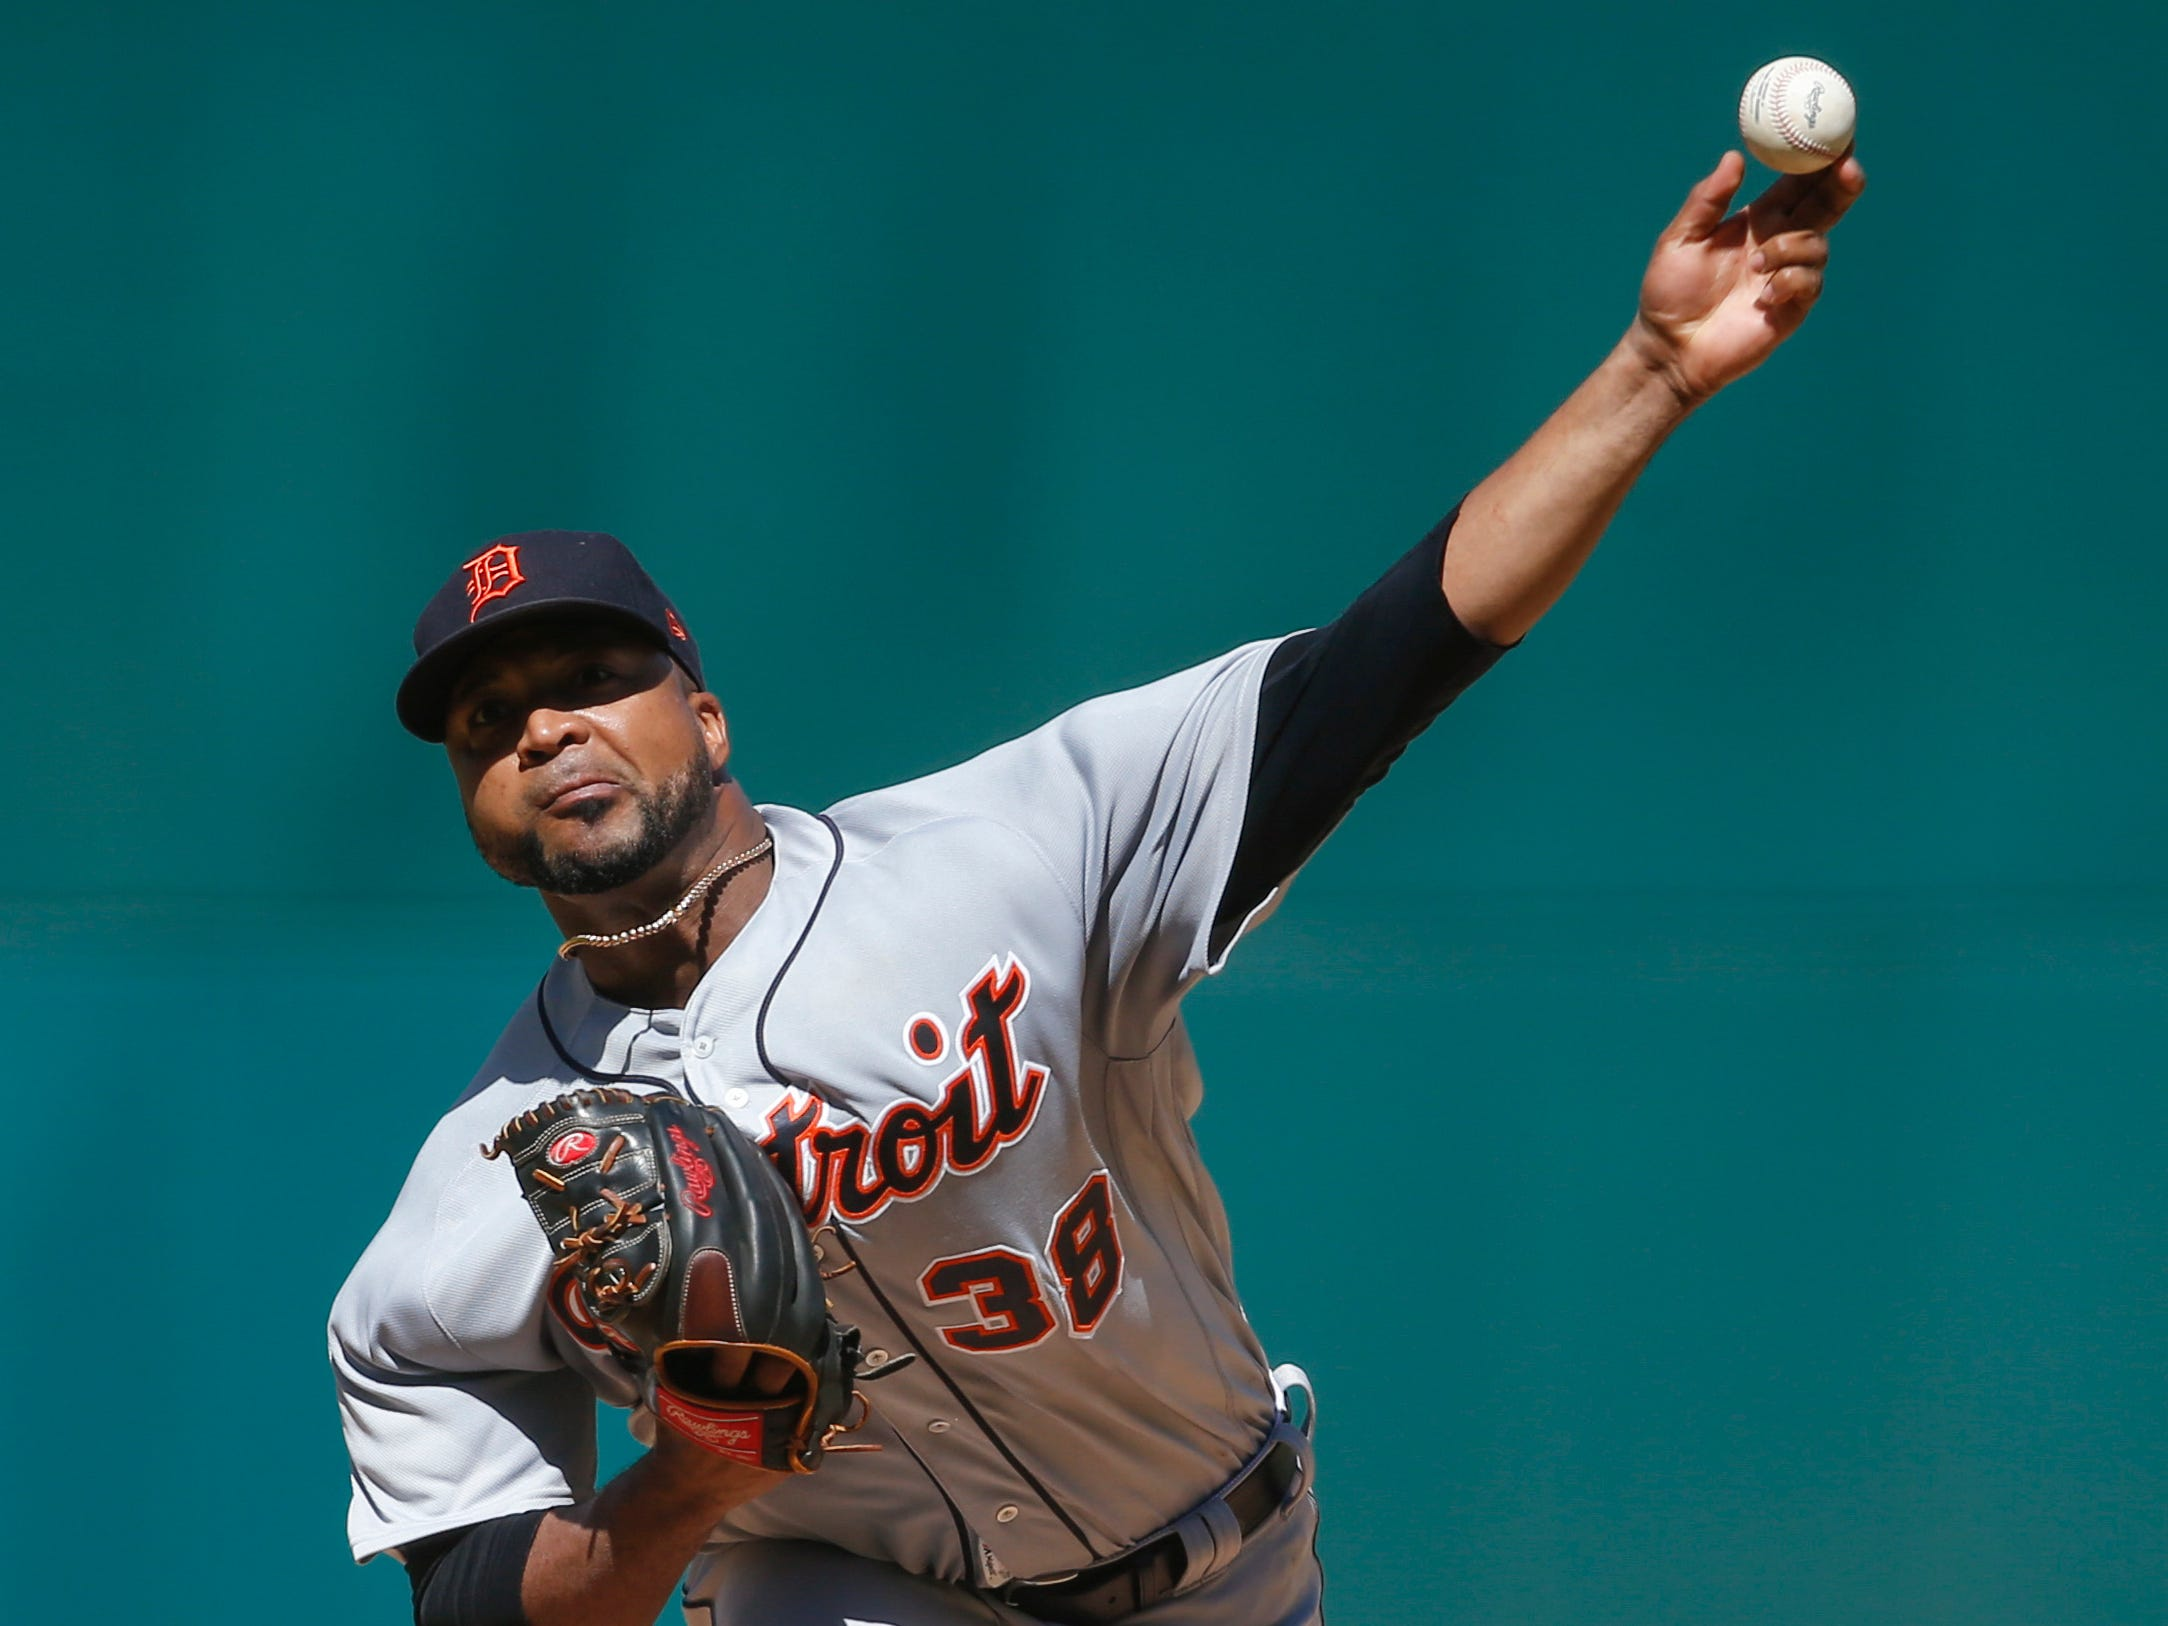 Detroit Tigers starting pitcher Francisco Liriano delivers against the Cleveland Indians during the first inning.